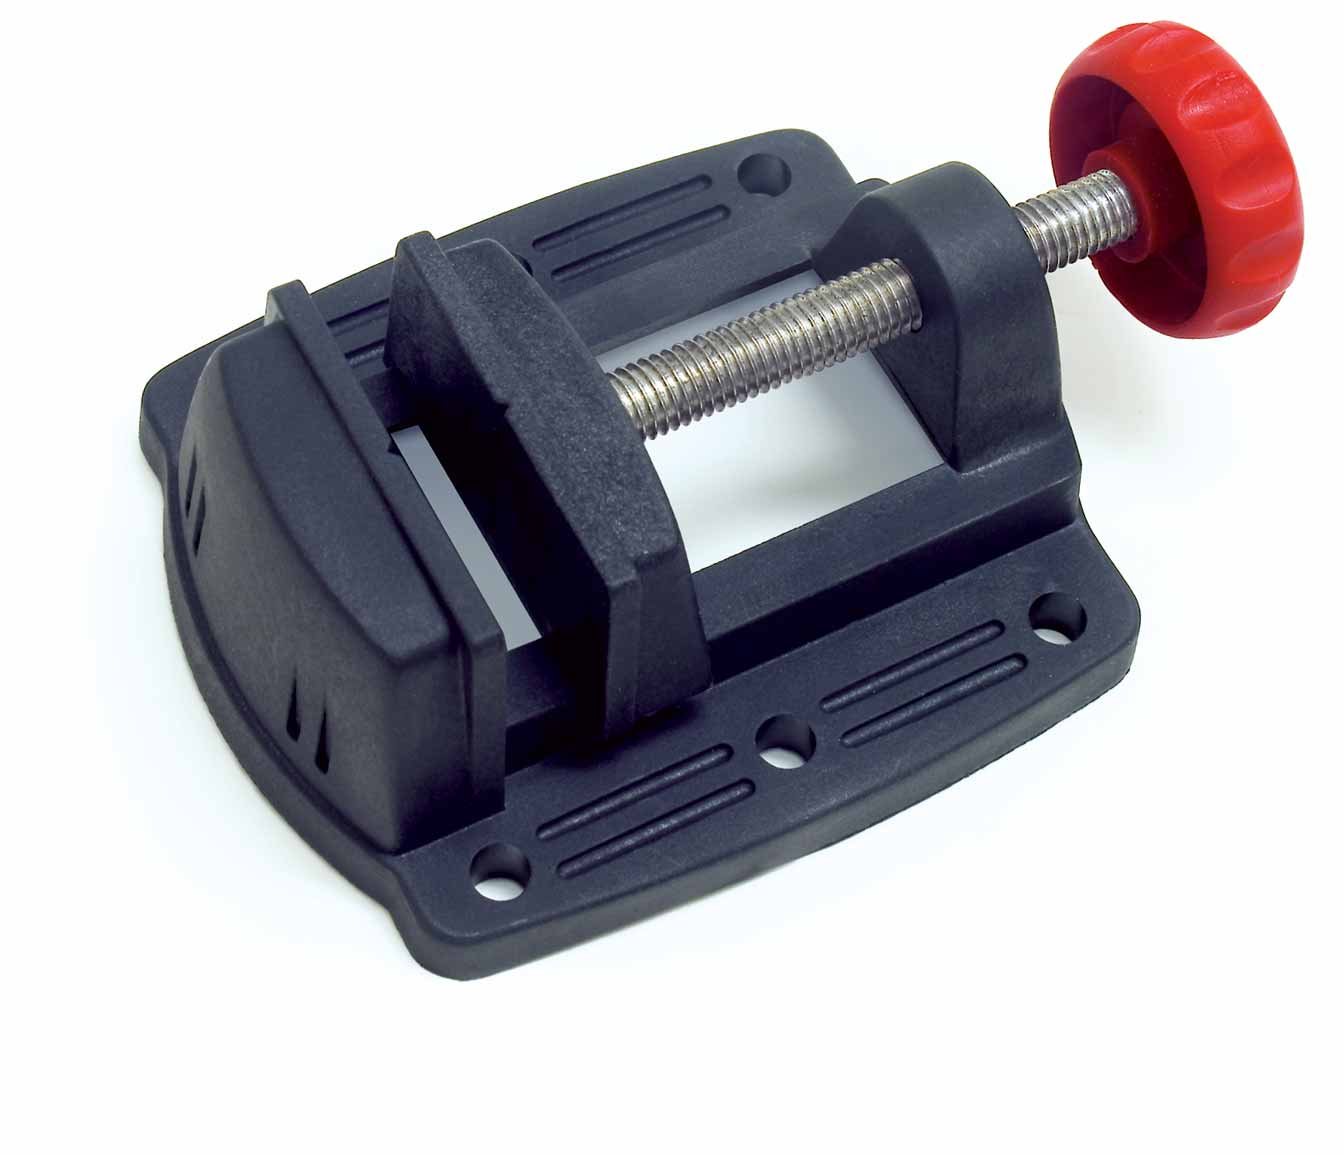 Plastic mini vise with stainless steel shaft hand